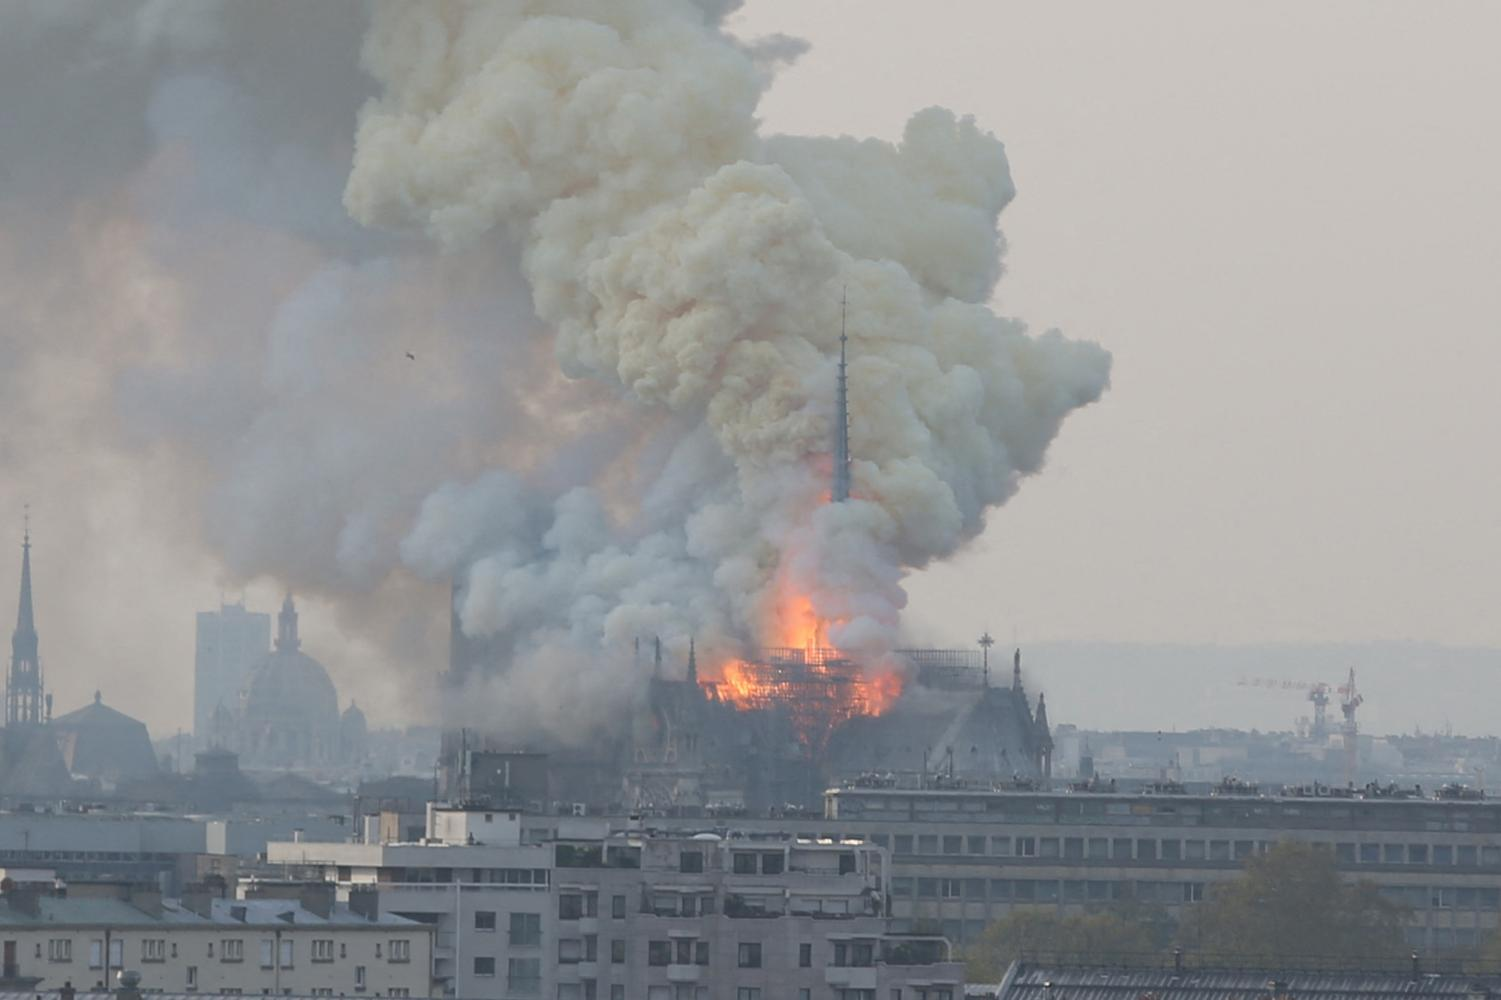 Smoke and flames rise during a fire at the landmark Notre Dame Cathedral in central Paris, France on Monday, April 15, 2019, potentially involving renovation works being carried out at the site, the fire service said. (Jerome Domine/Abaca Press/TNS)